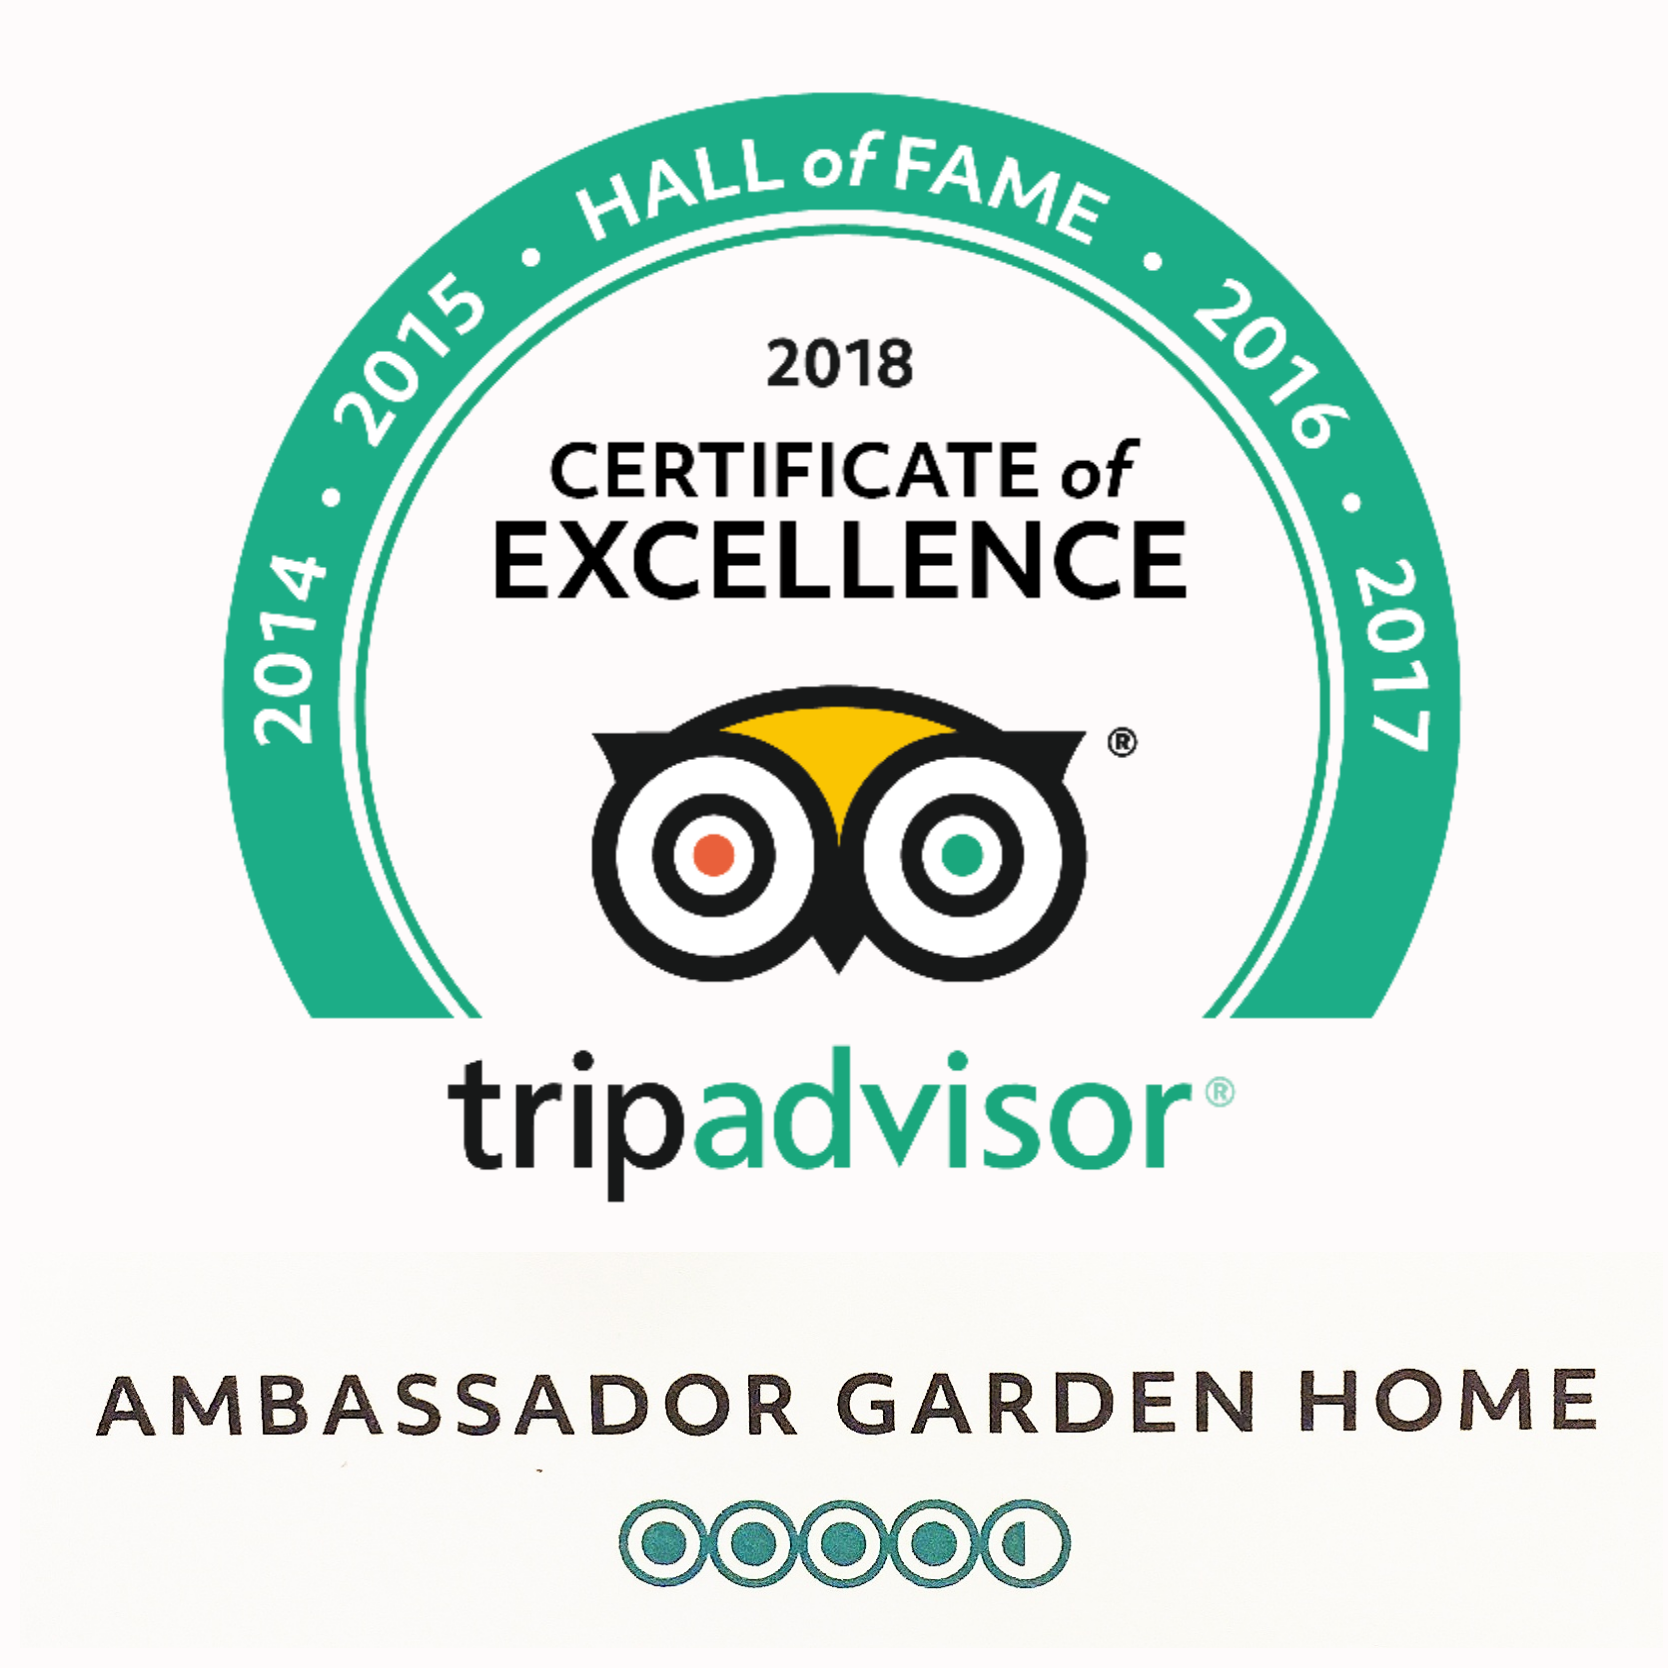 Ambassador Garden Home has been Awarded by Tripadvisor in Nepal for 2010 to 2017 the symbol of excellence in hospitality for 8 consecutive years.